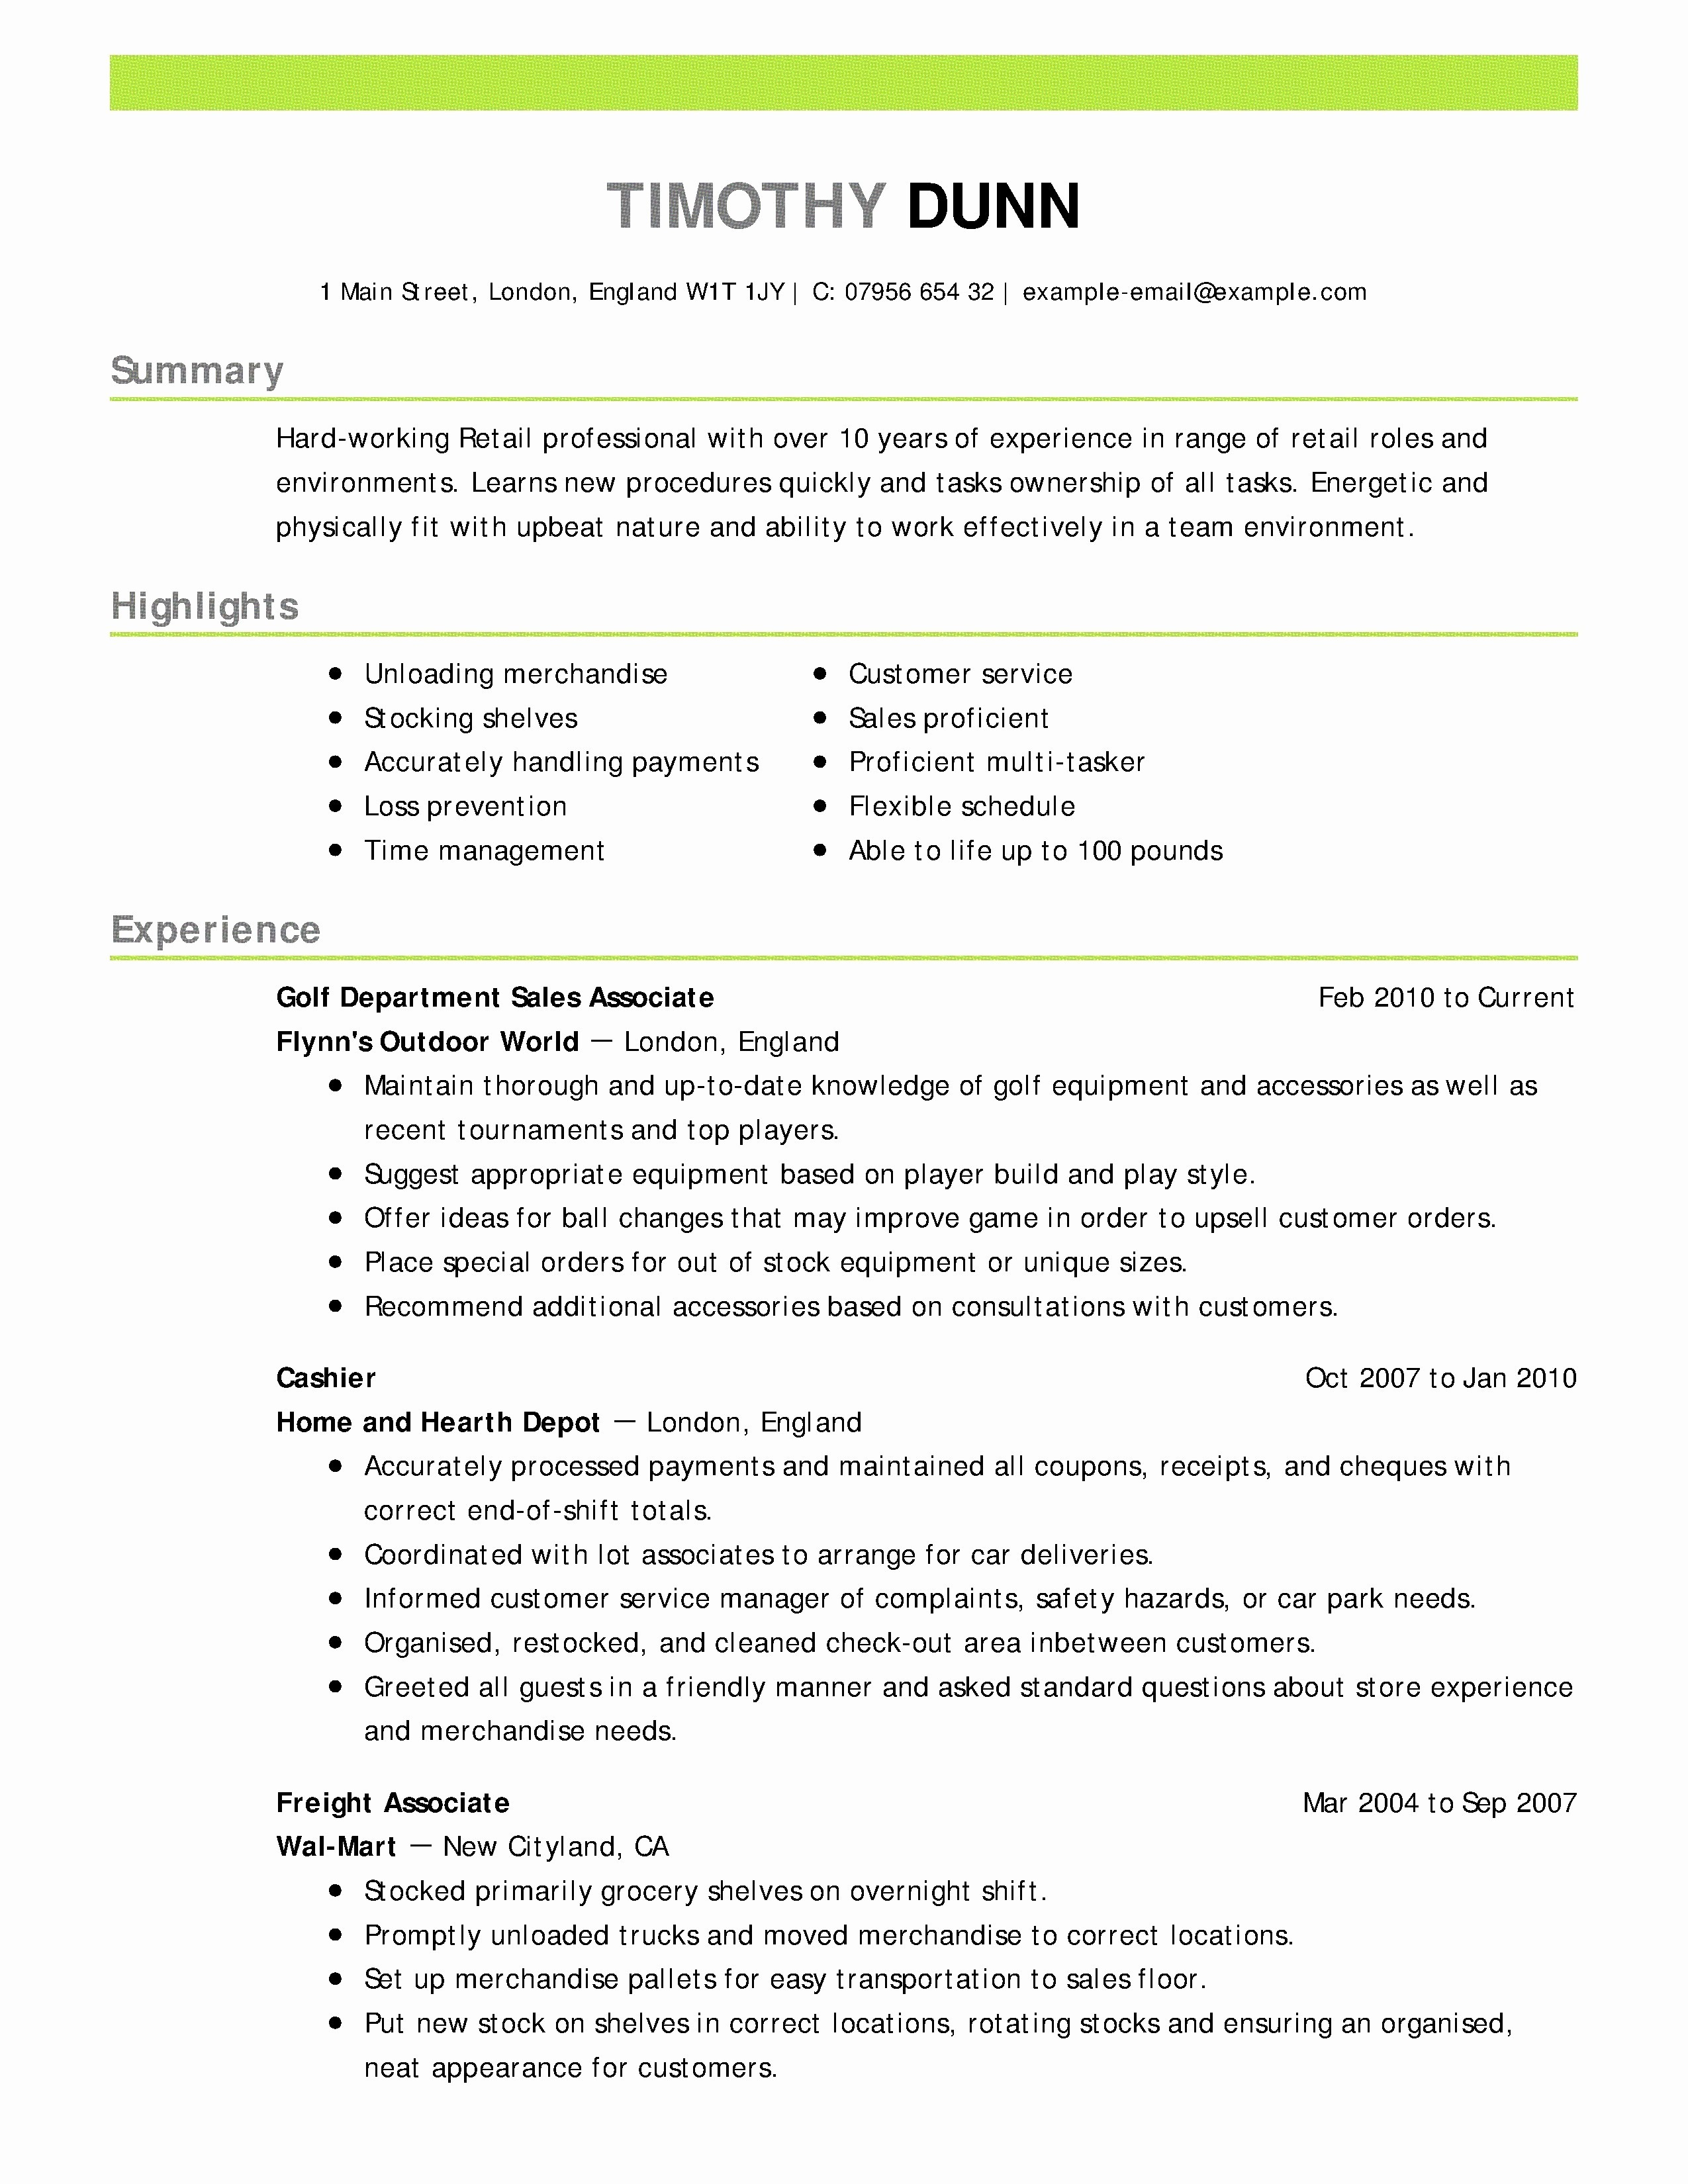 Career Change Objective Statements - 25 Fresh Good Resume Objective Statement